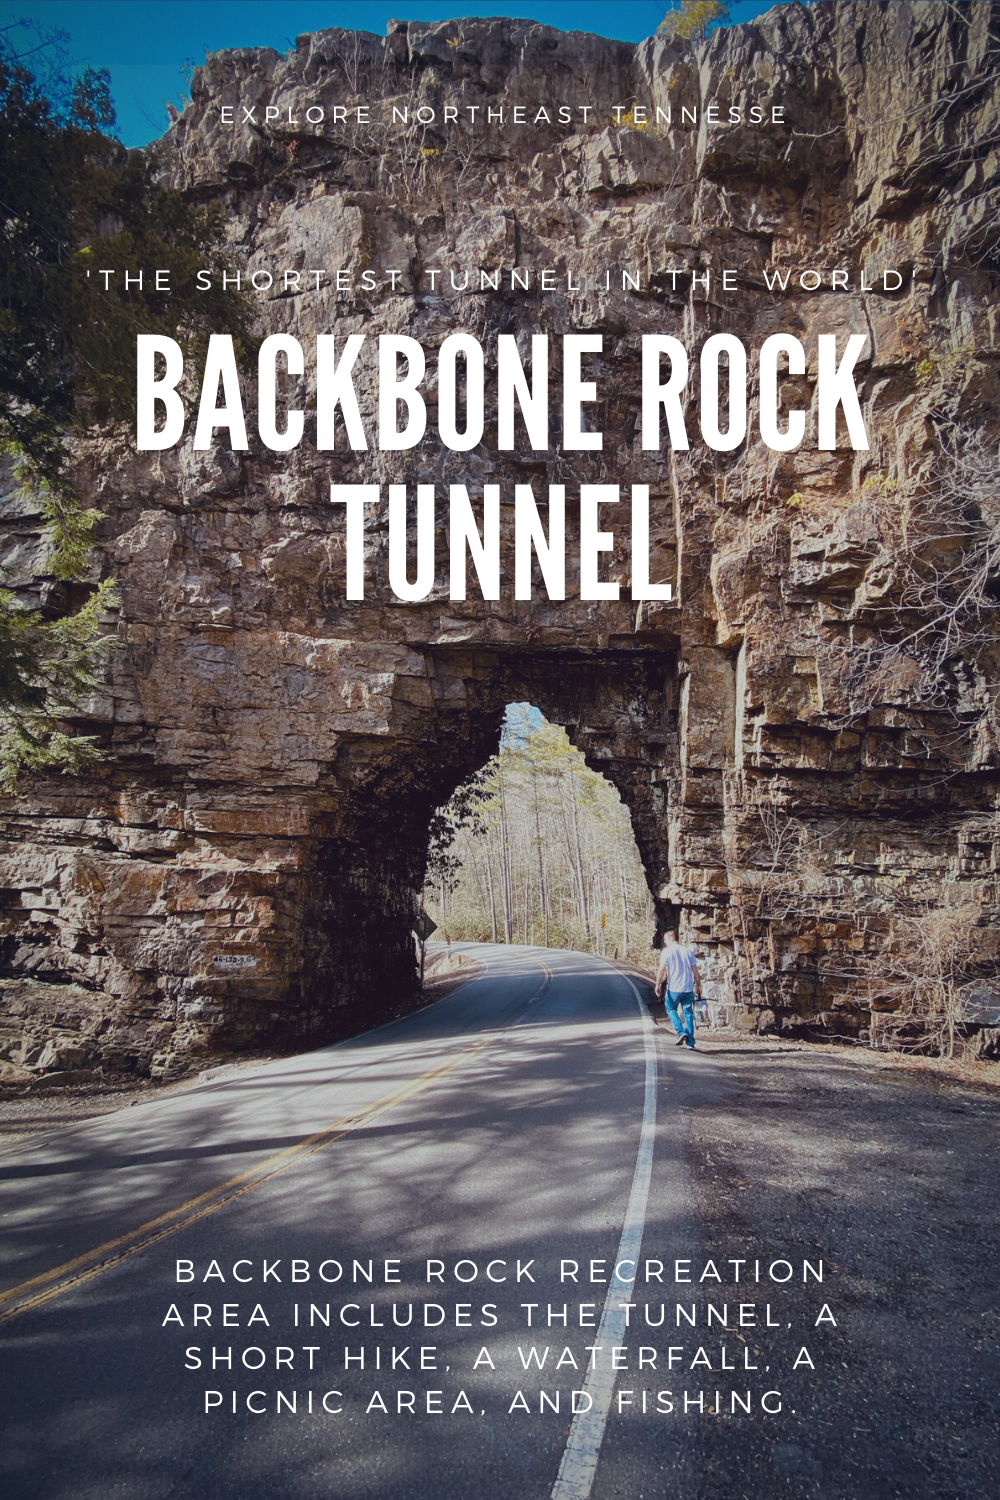 Backbone Rock Tunnel and Recreation Area